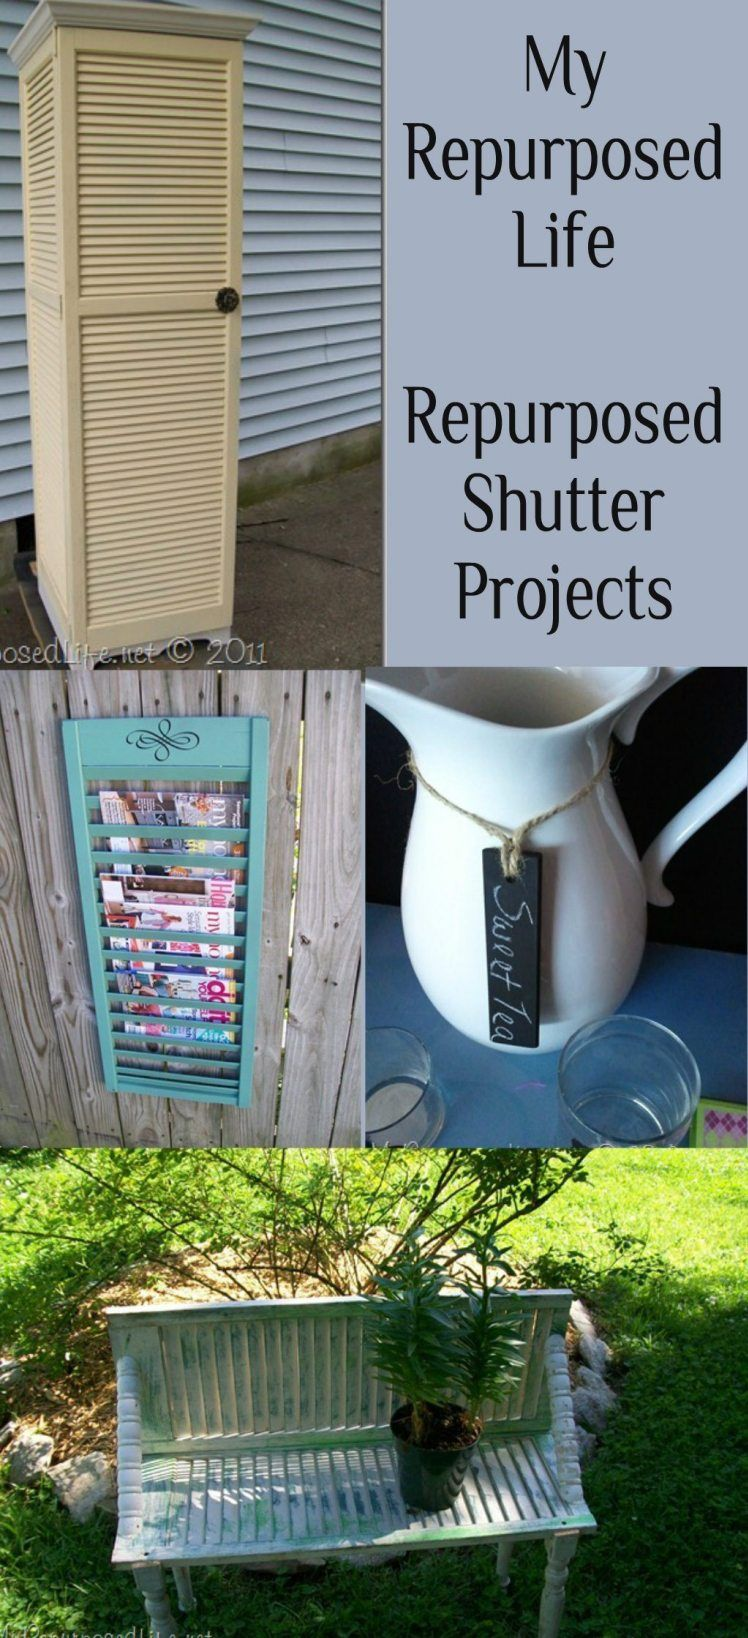 Take 2 Tuesday repurposed shutters - My Repurposed Life Rescue Re-imagine Repeat